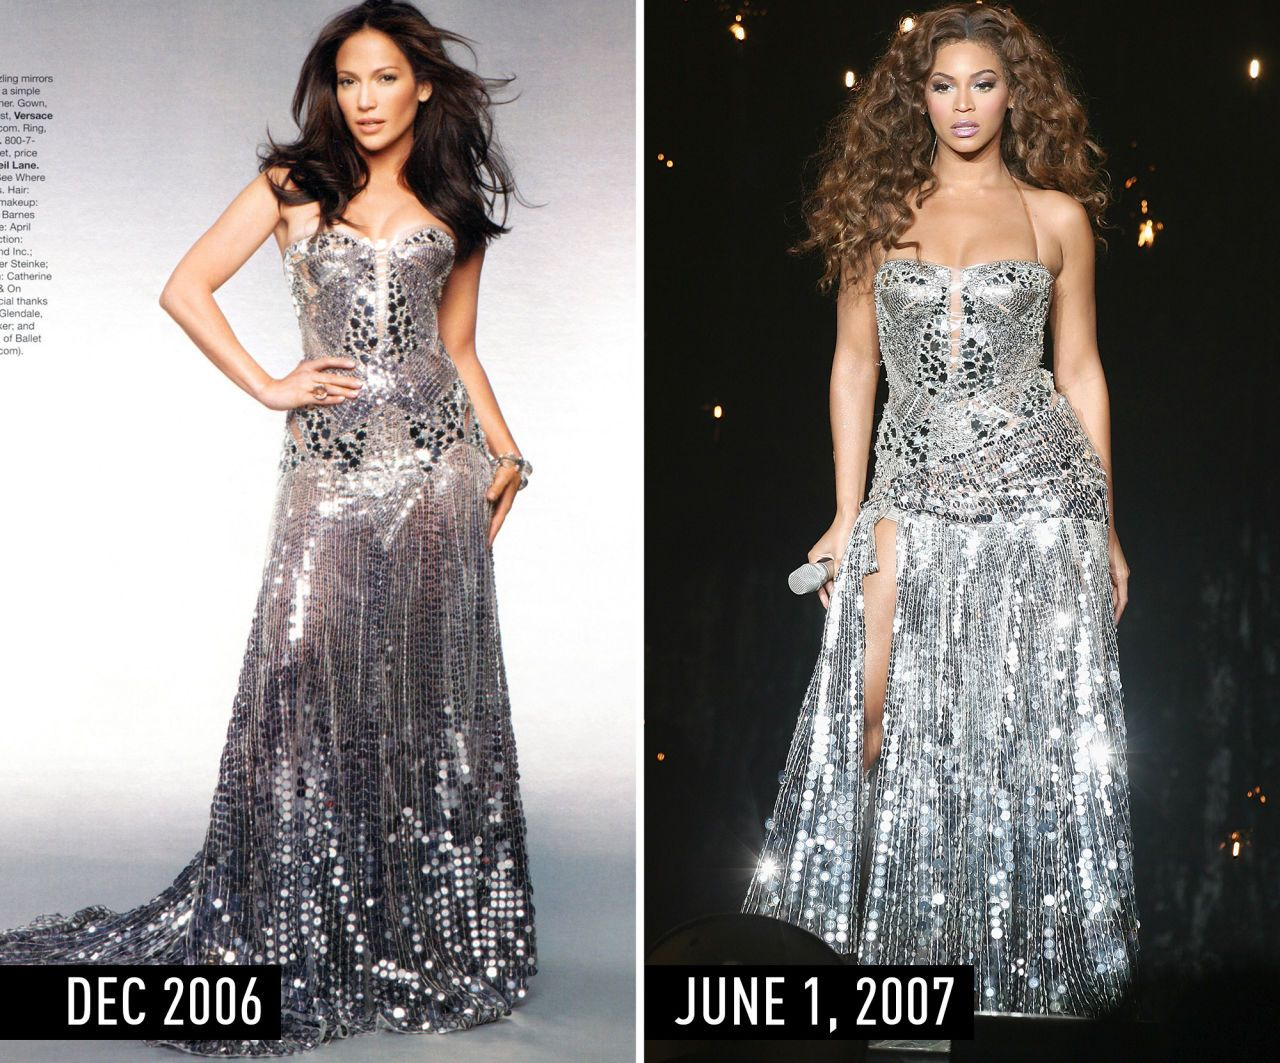 9. Mirrored, silver gown and long, loose hair.  J.Lo in the December 2006 issue of Harper's Bazaar.  Beyoncé performing during her U.K. tour on June 1, 2007.  Definitive Proof Beyoncé Is OBSESSED With J.Lo's Style